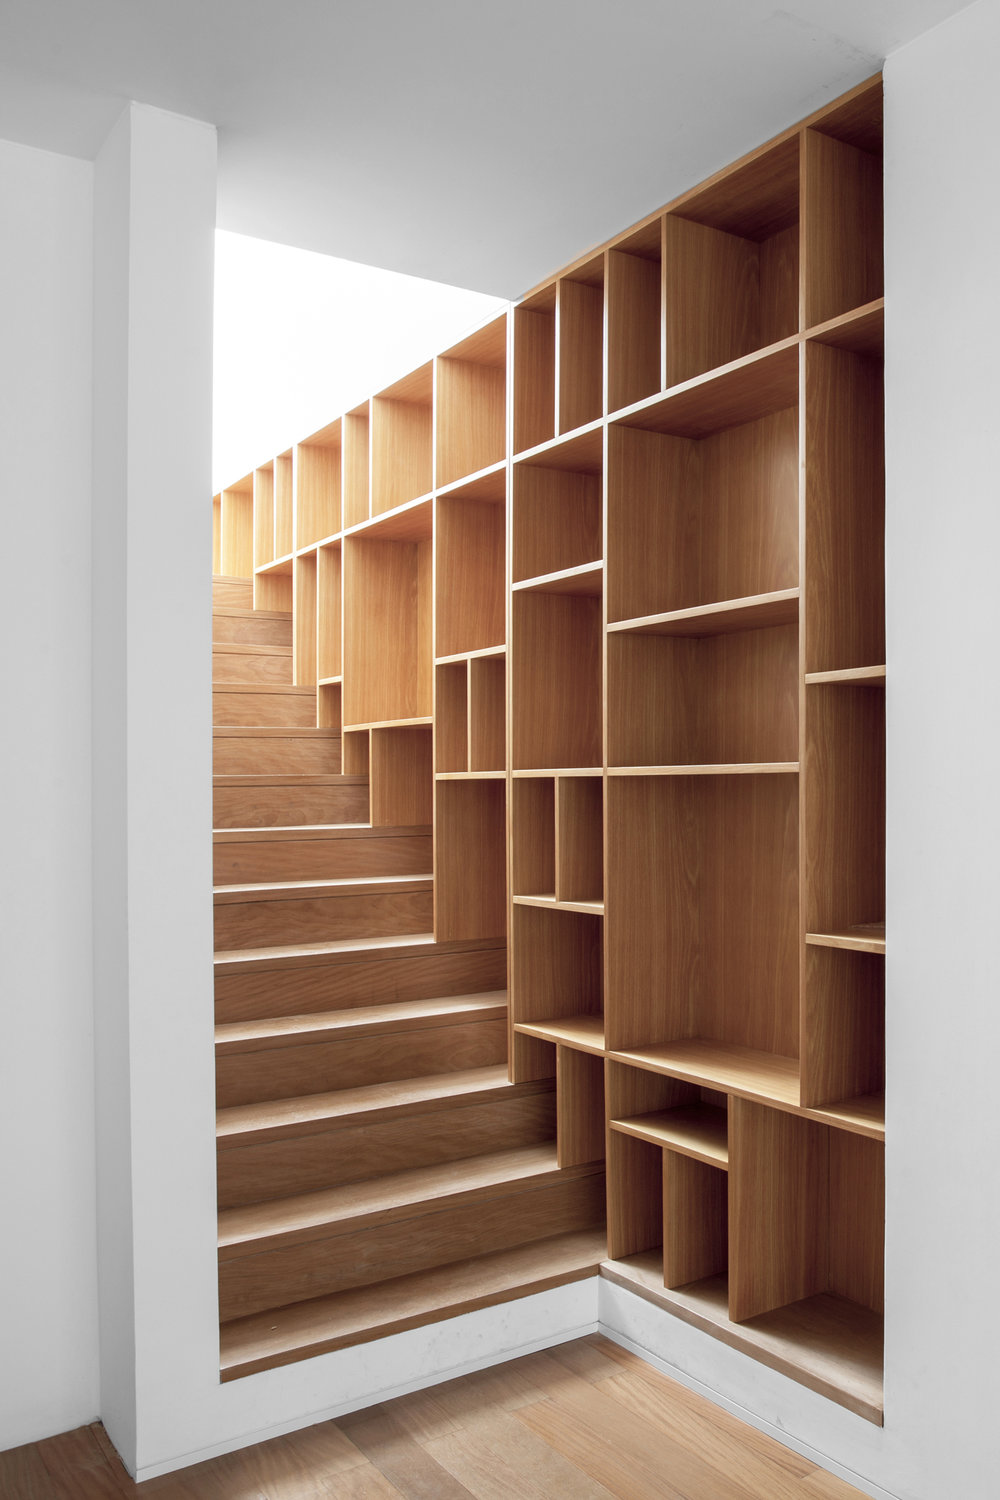 Integrated wooden bookcase and staircase design